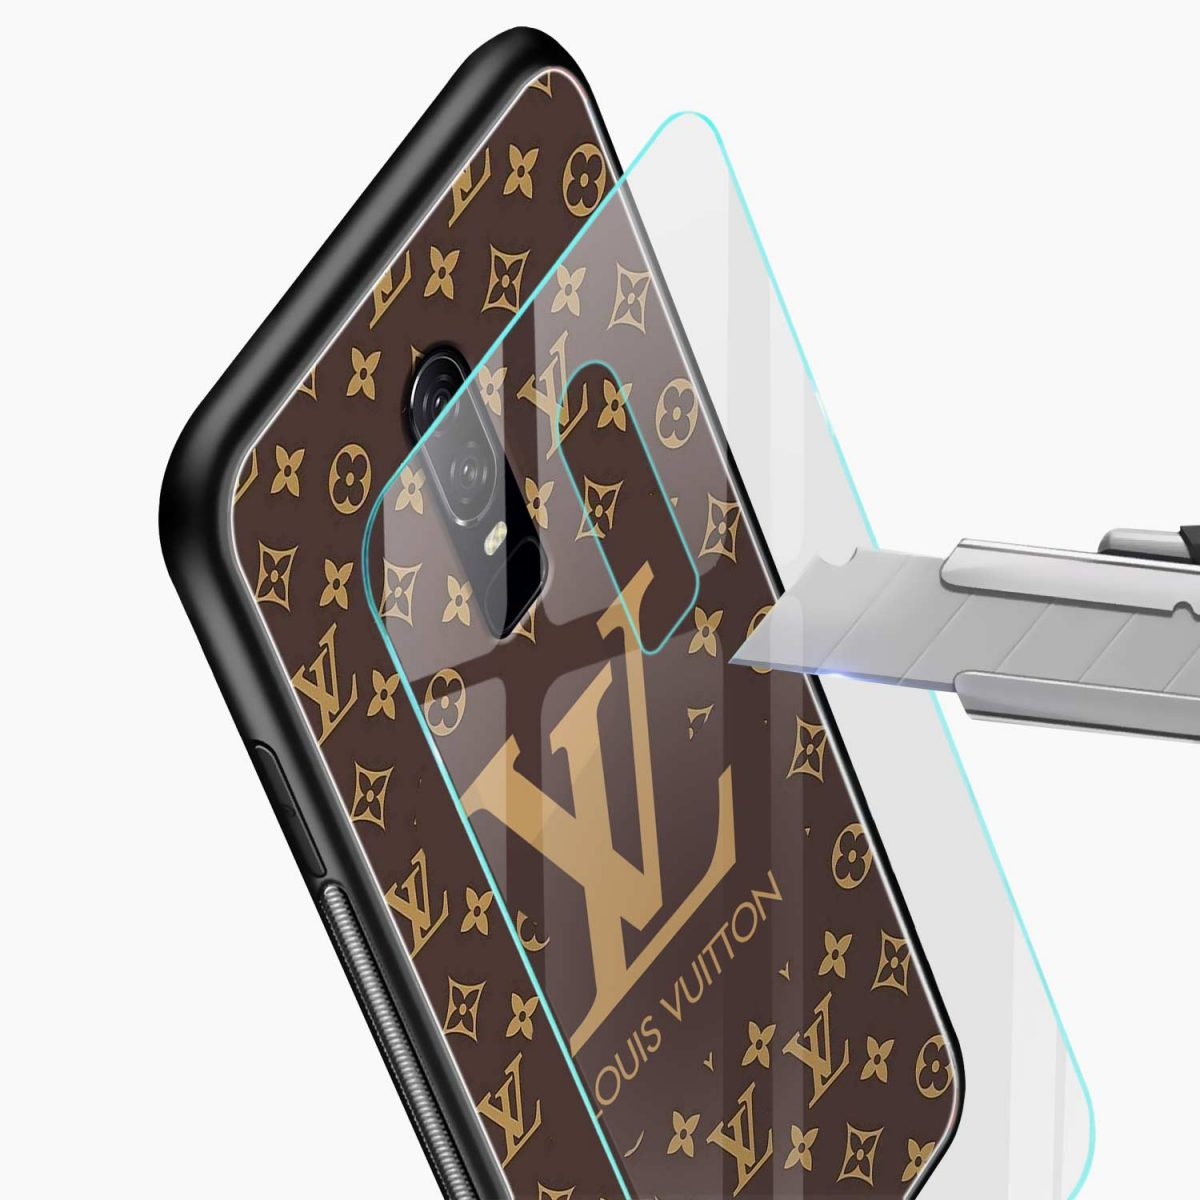 LOUIS VUITTON glass view oneplus 6 back cover